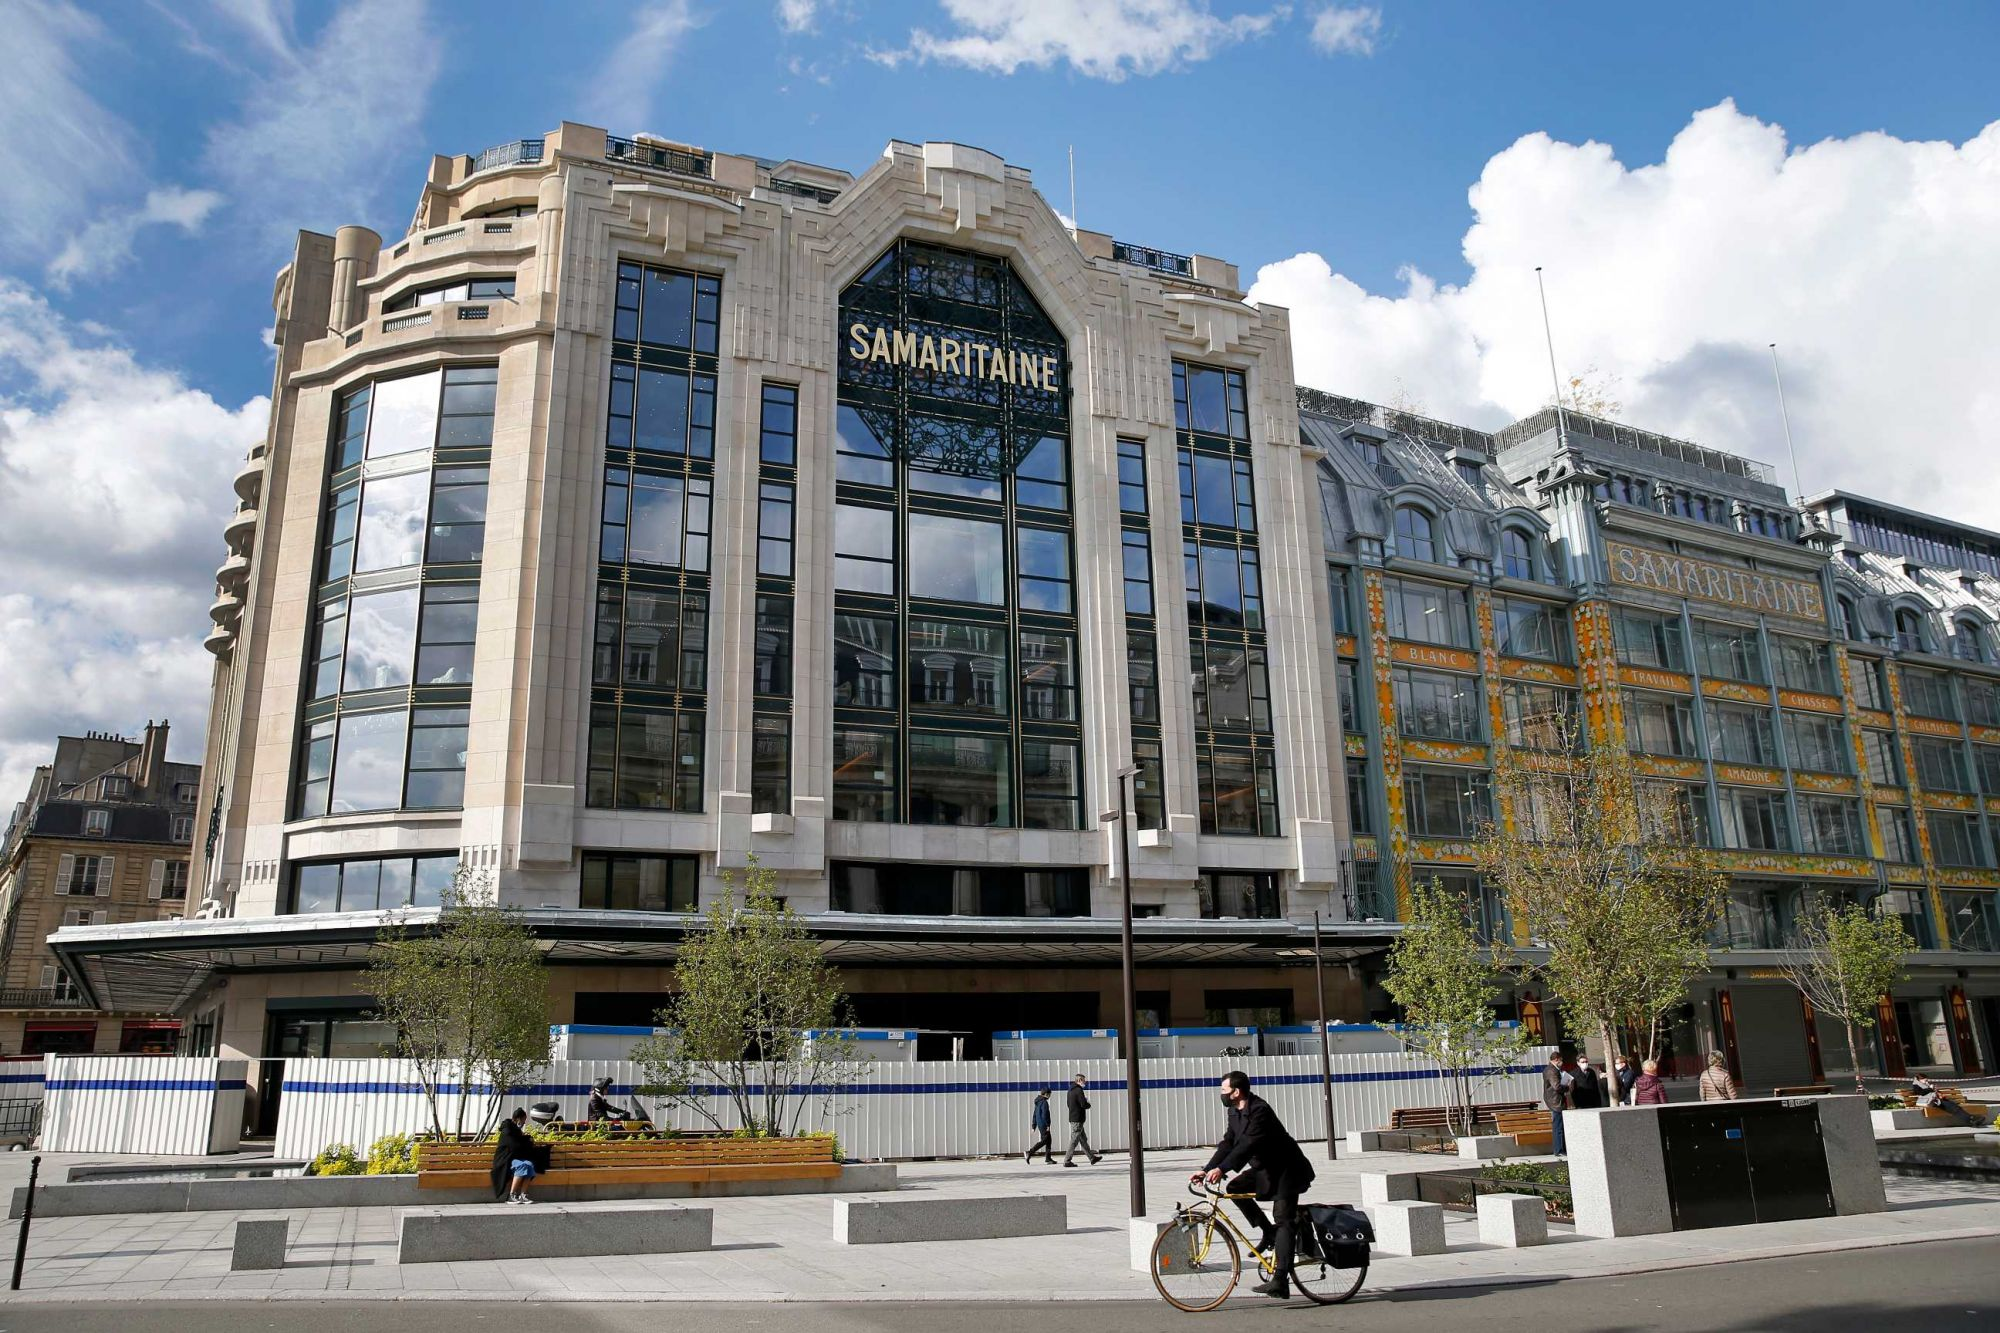 Luxury Department Store La Samaritaine Re-Opens In Paris After 16 Years